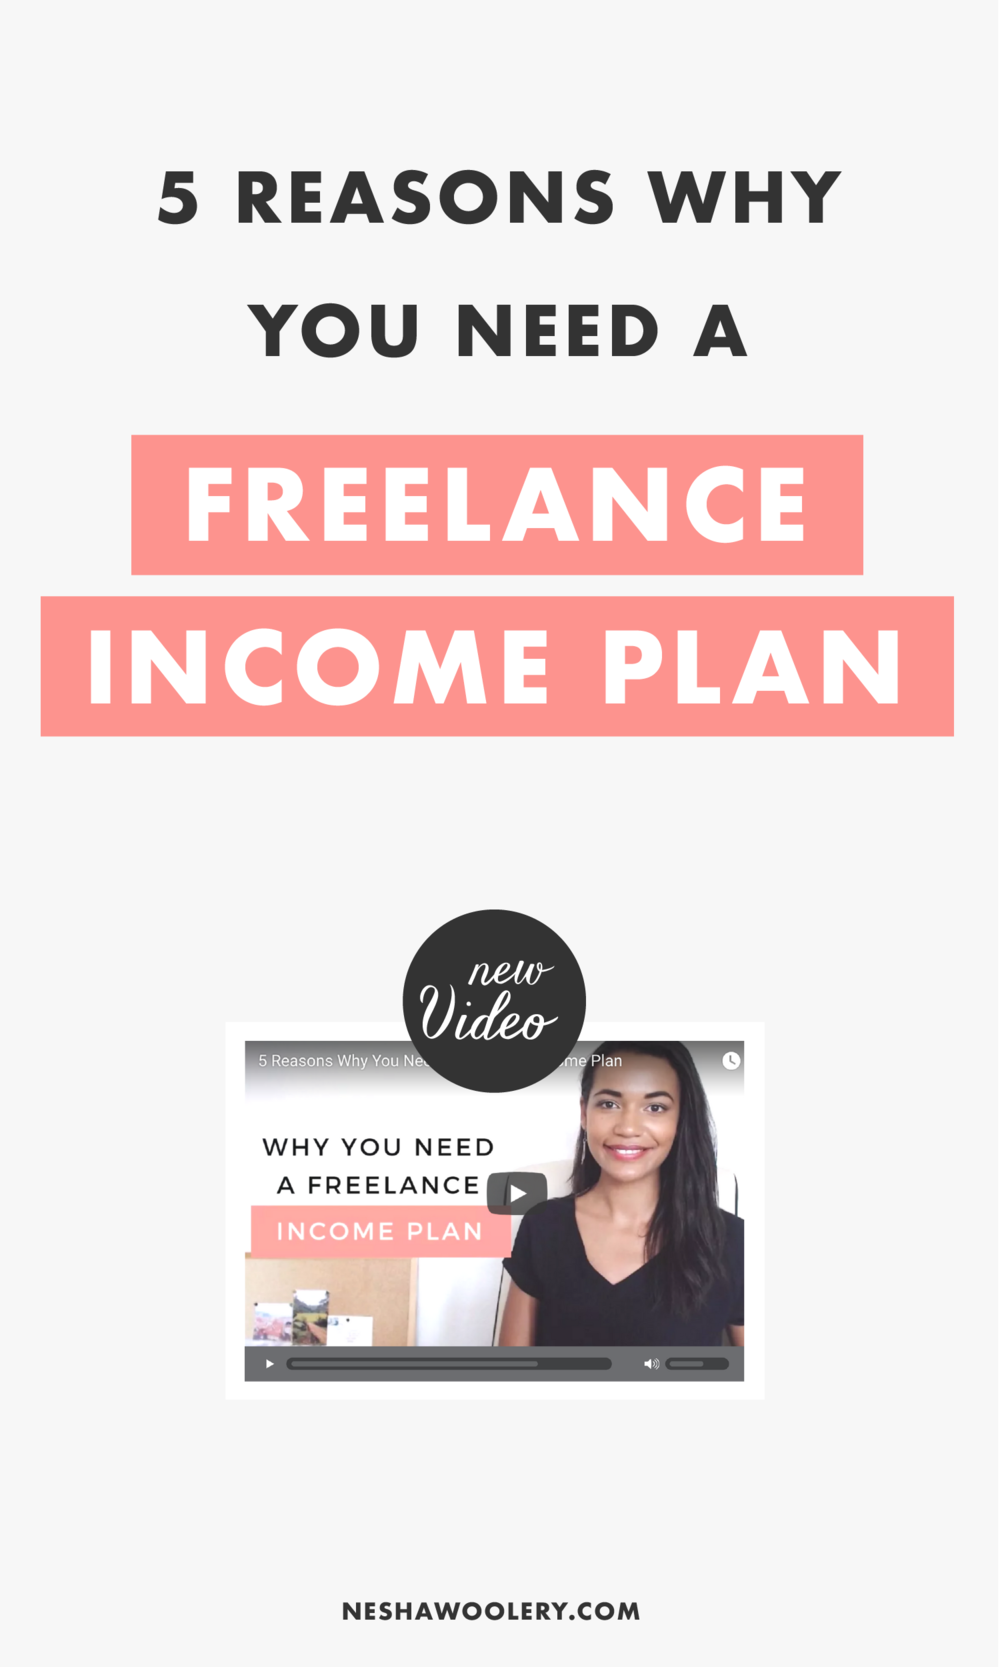 Is your freelance web or graphic design business going through a summer slump? It happens every year. You stop booking booking clients and business goes slow, right? Click through to learn 5 ways to get out of a summer slump and book more design clients so you can start making money again!